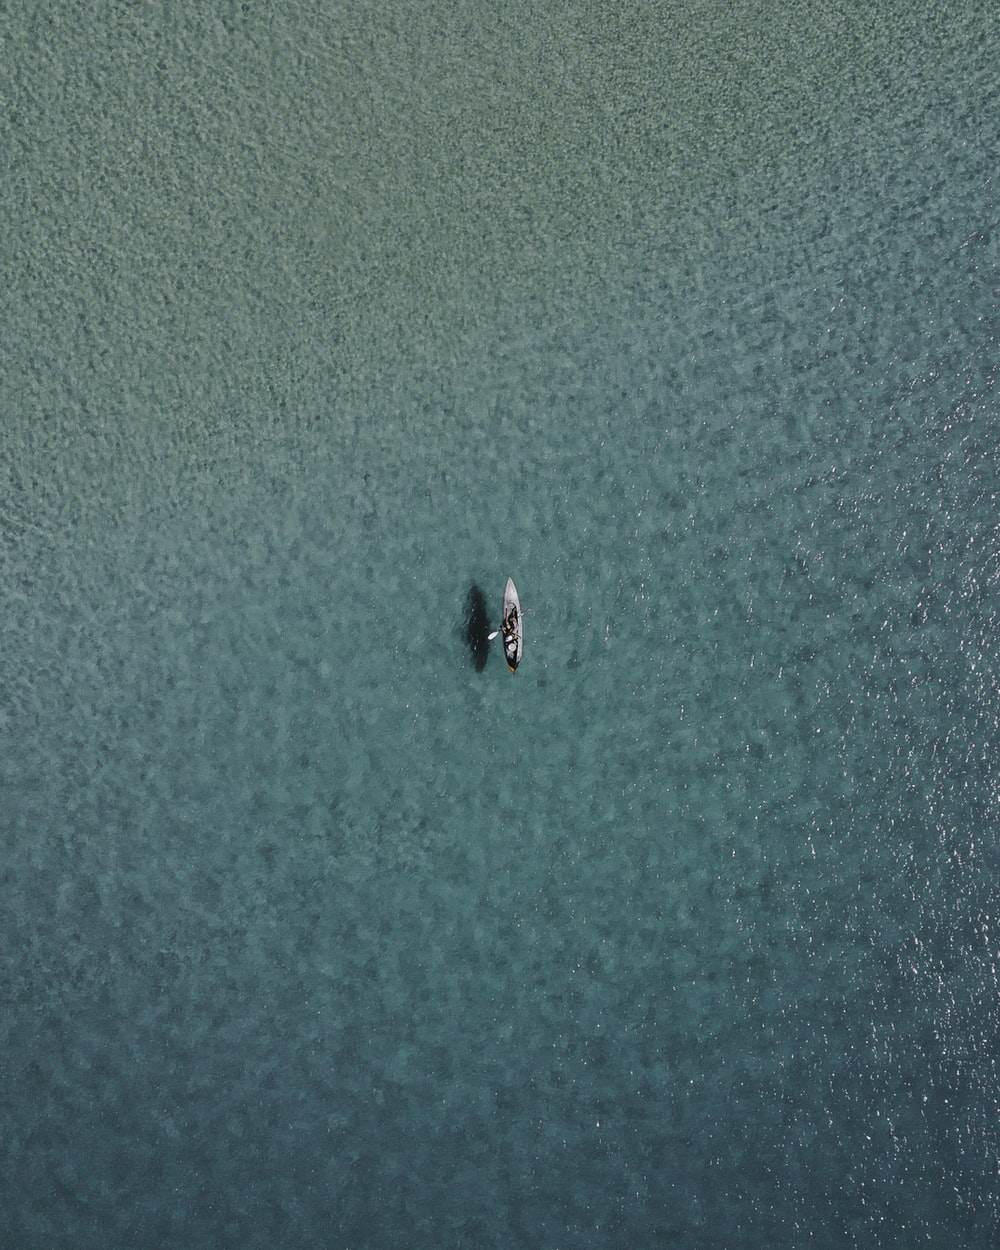 white paddle boat on body of water